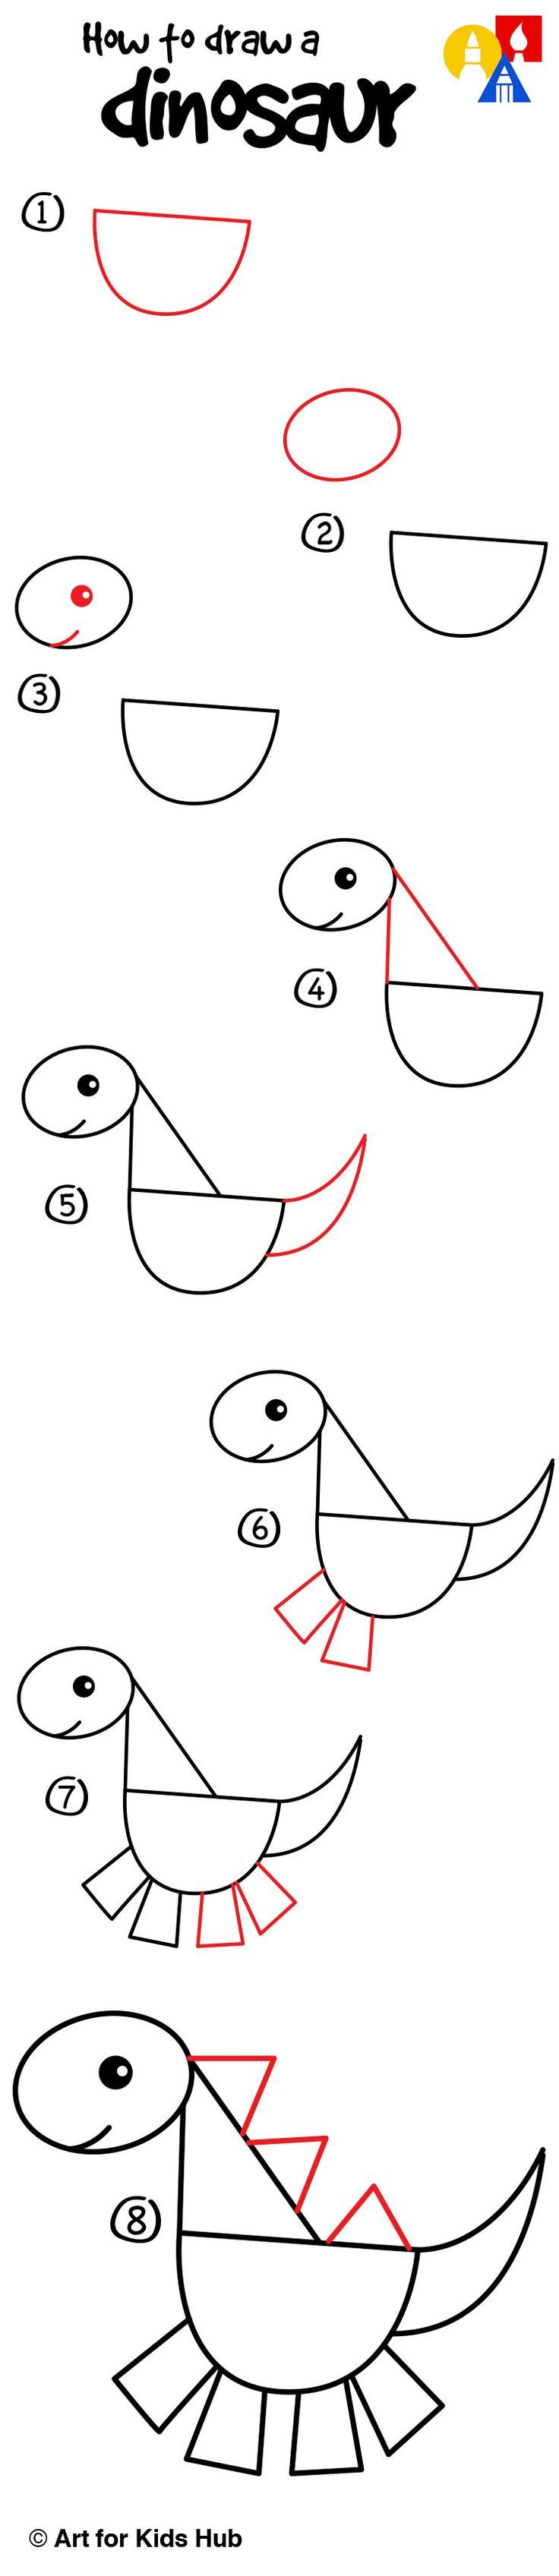 How To Draw A Dinosaur With Shapes Art For Kids Hub Draws Like